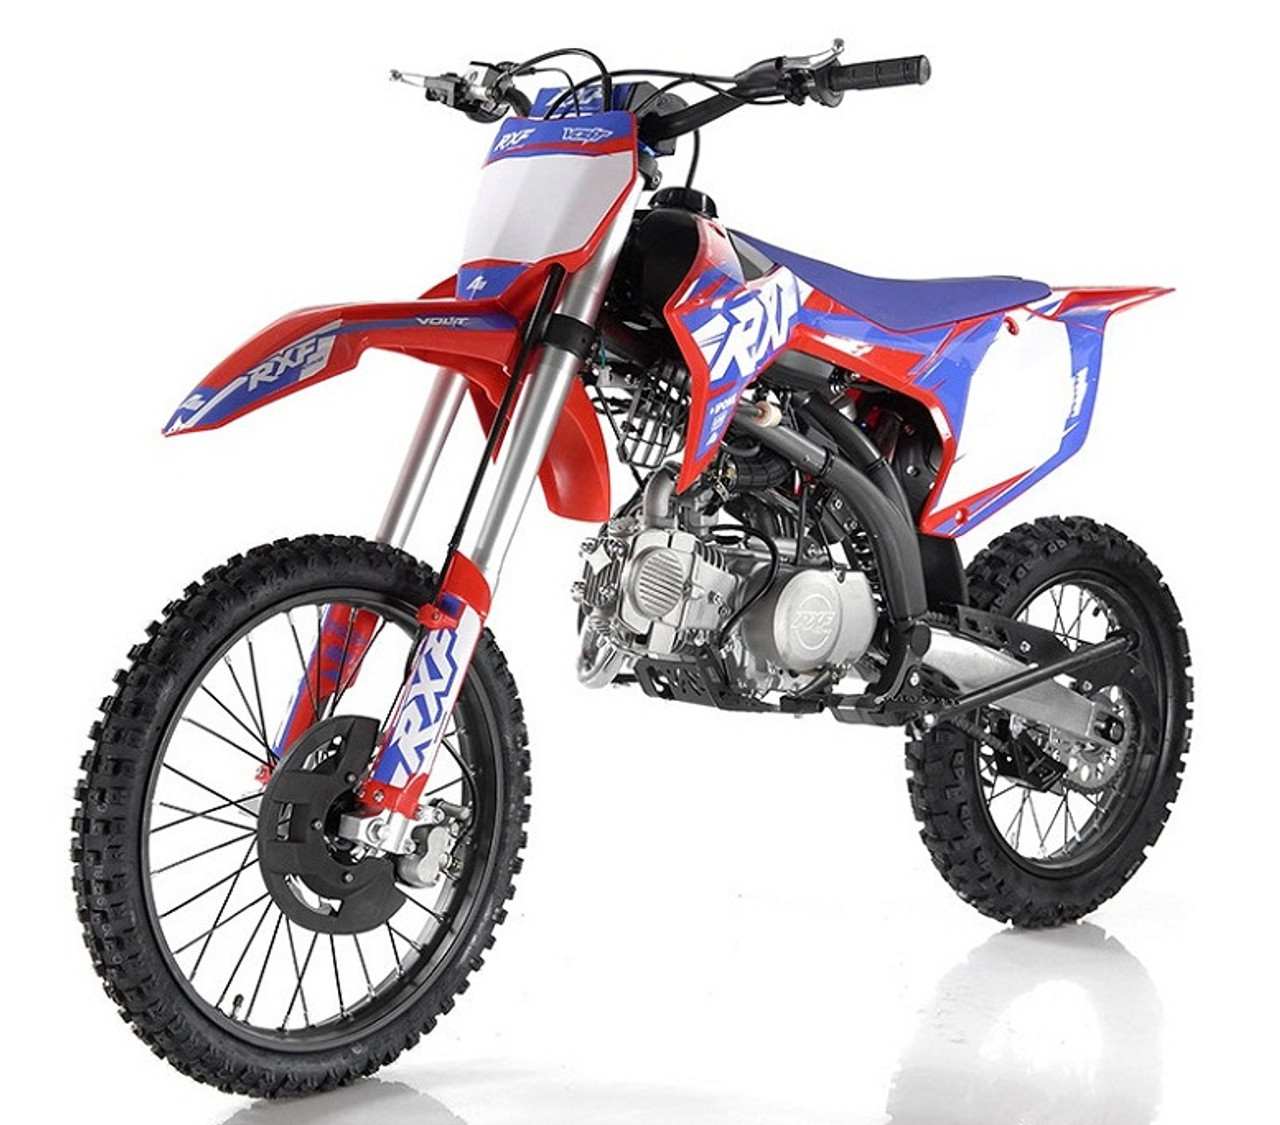 Apollo RXF 150 LMAX Freeride 140cc Dirt Bike, Manual Transmission, (16'/19') tires, Large Frame